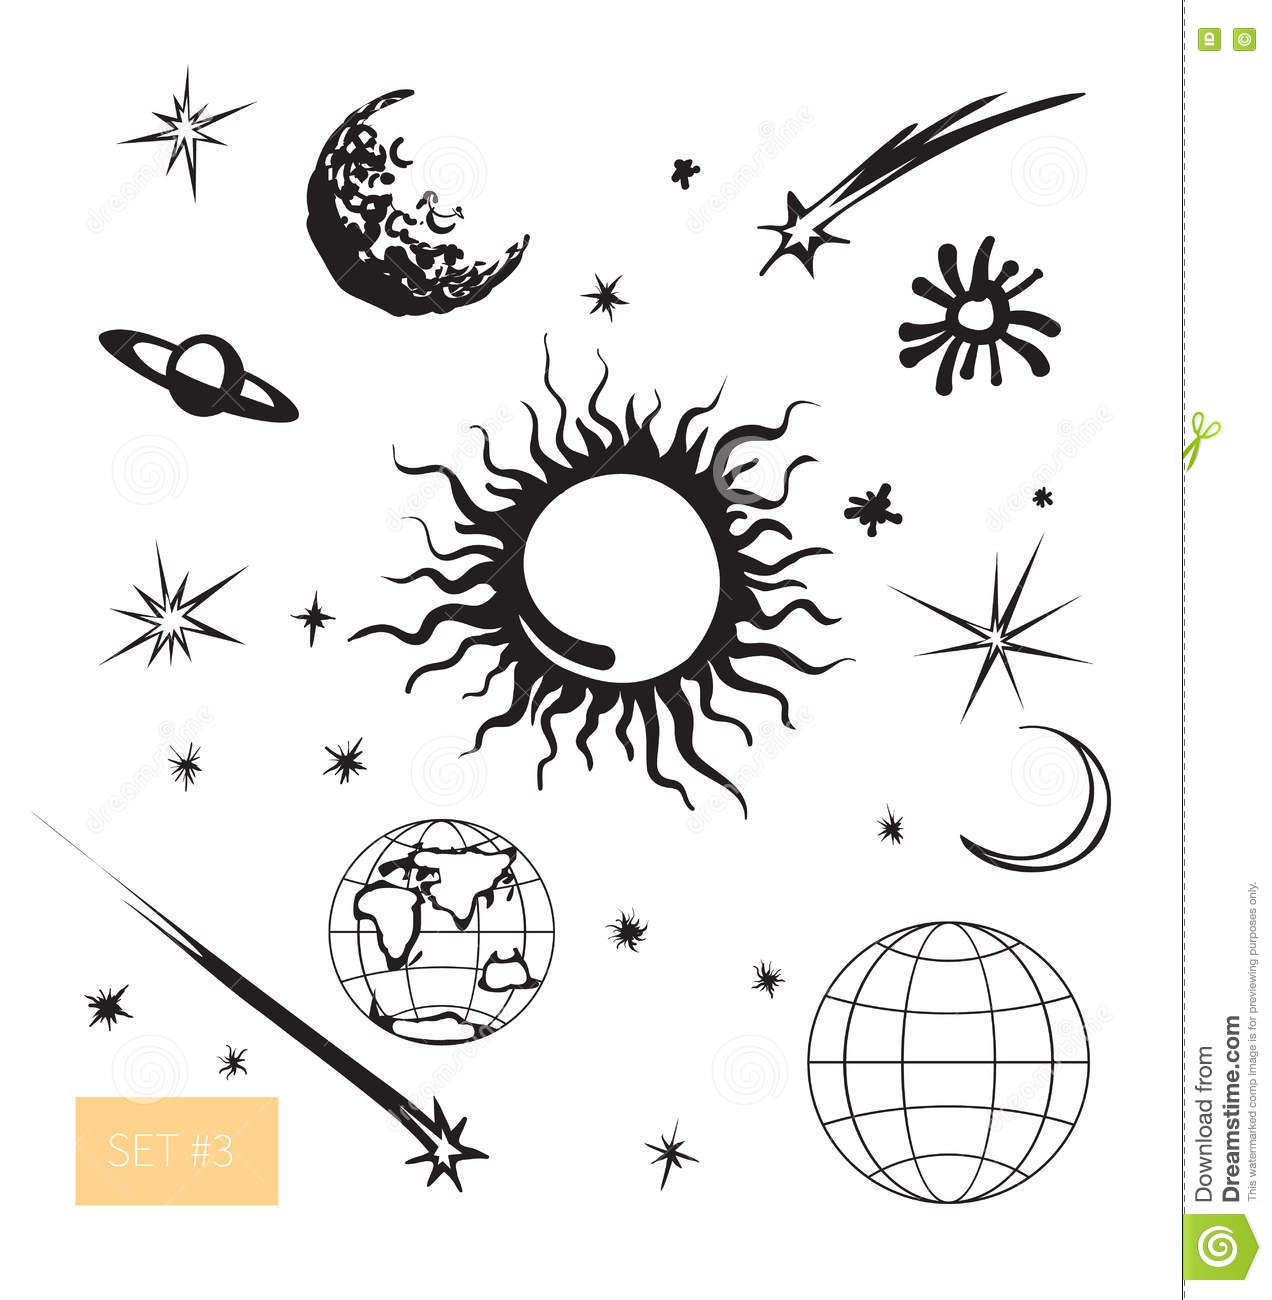 Earth Sun And Moon Drawing - George's Blog